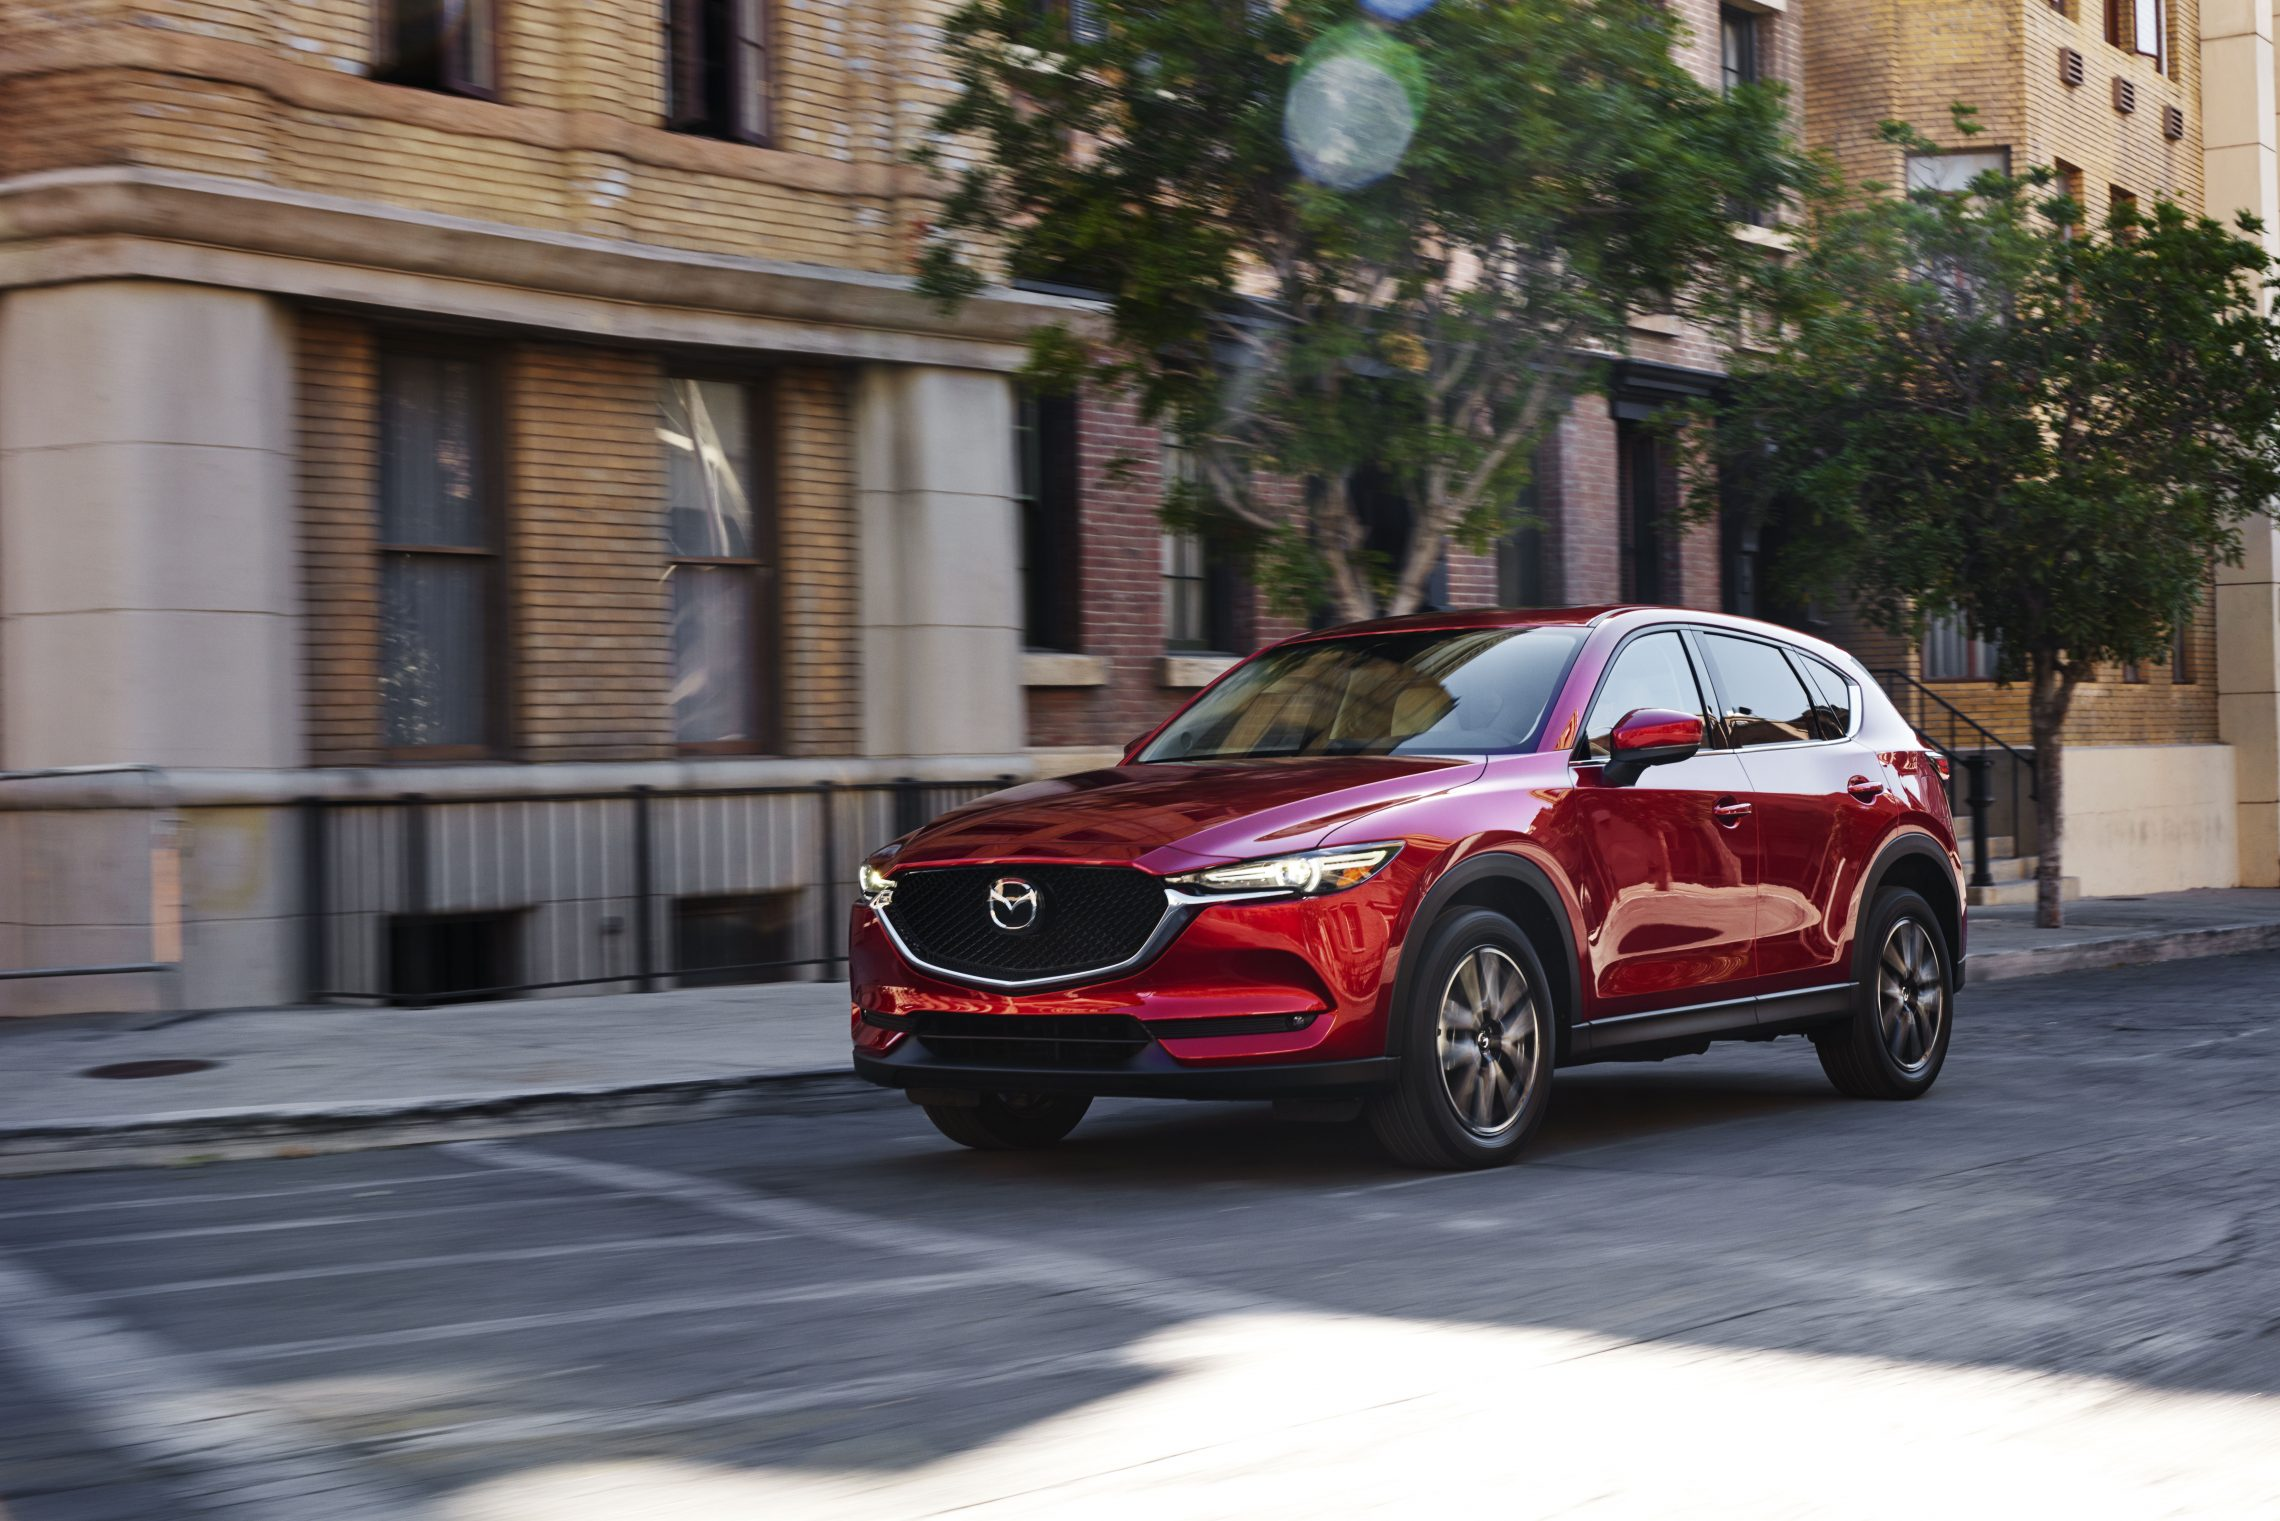 2018 Mazda CX-5 Exterior Driving Towards